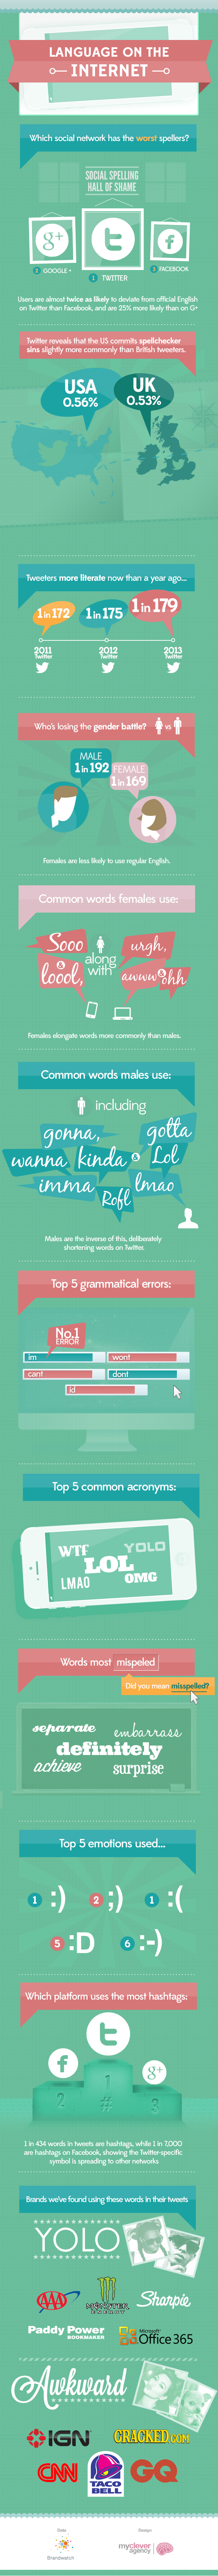 600x7088xlanguage-infographic2.png.pagespeed.ic.lwu_gnfklj